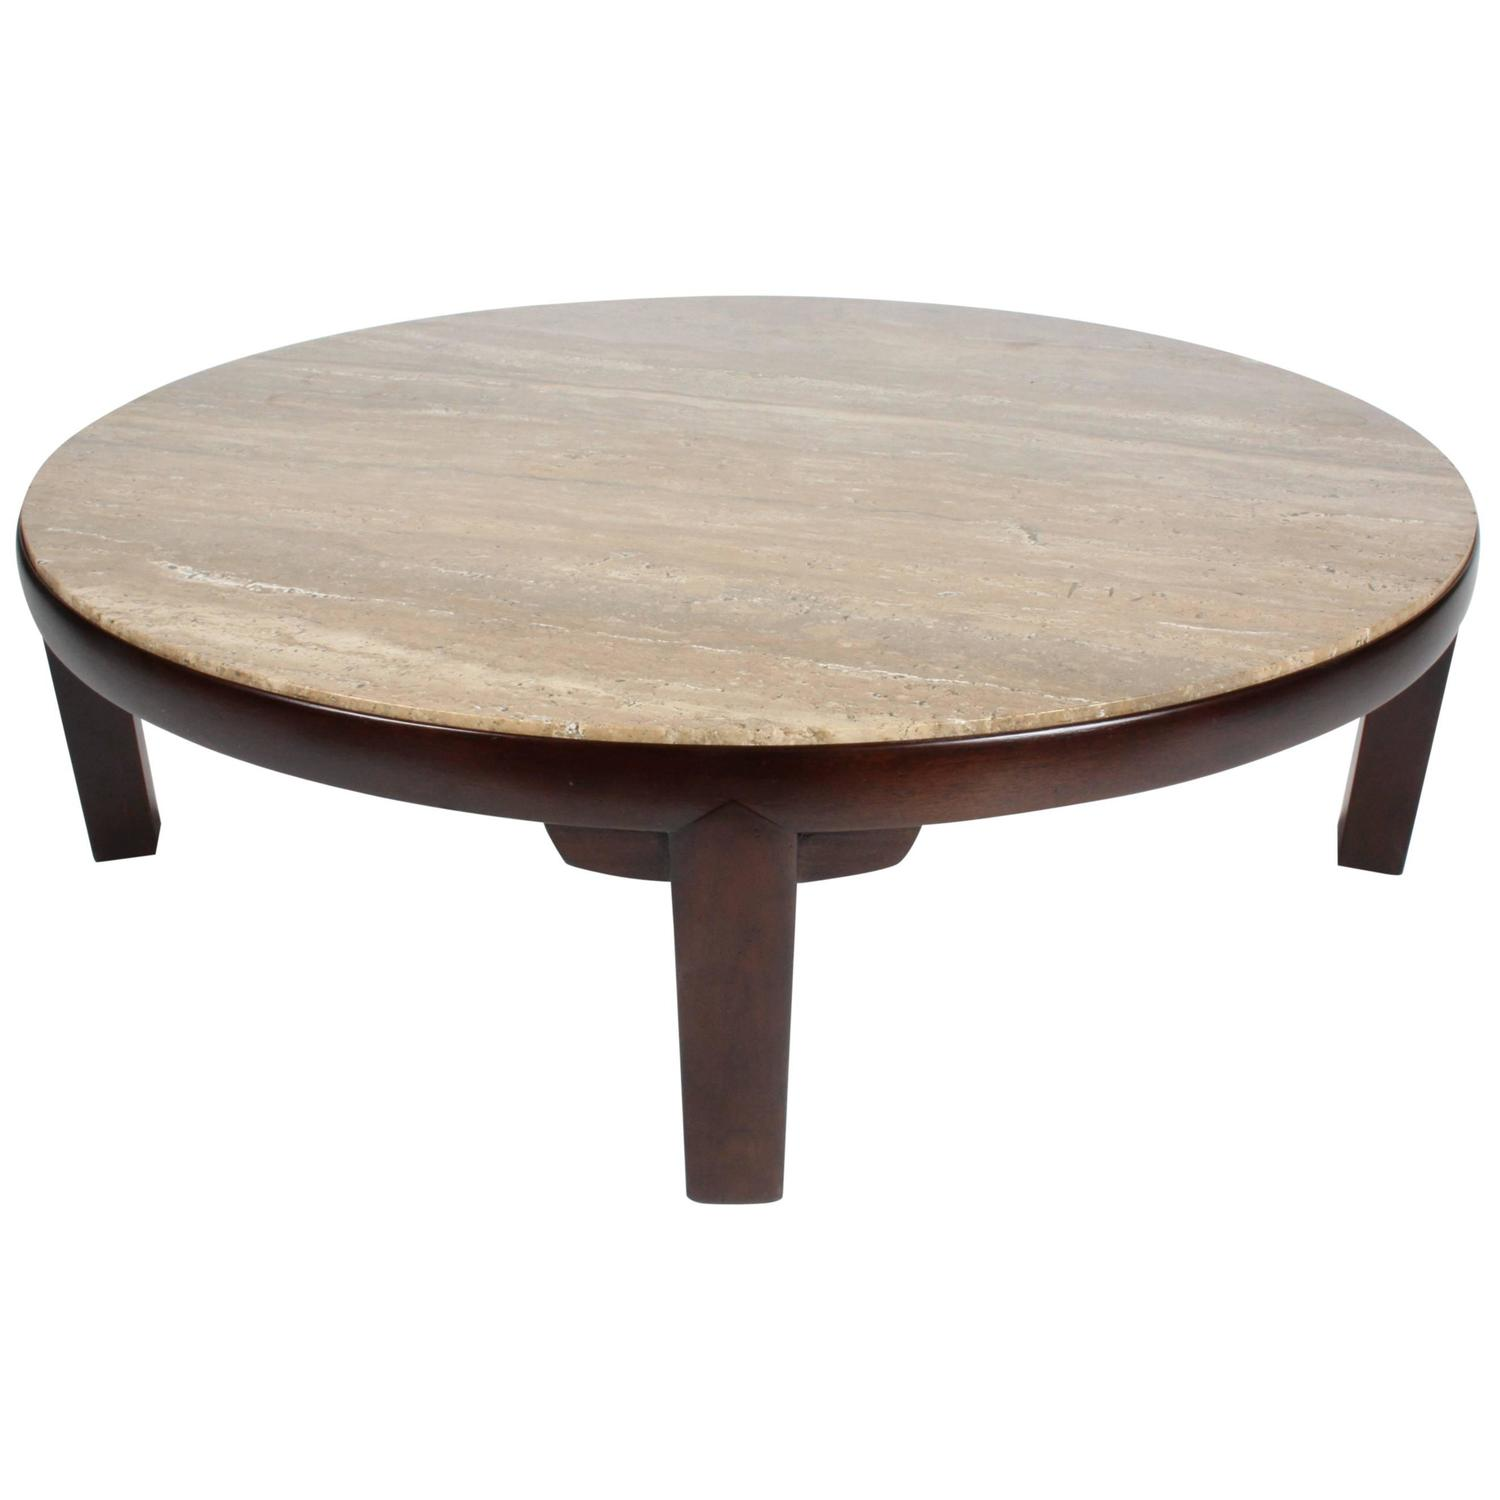 Edward Wormley for Dunbar Round Coffee Table with Walnut